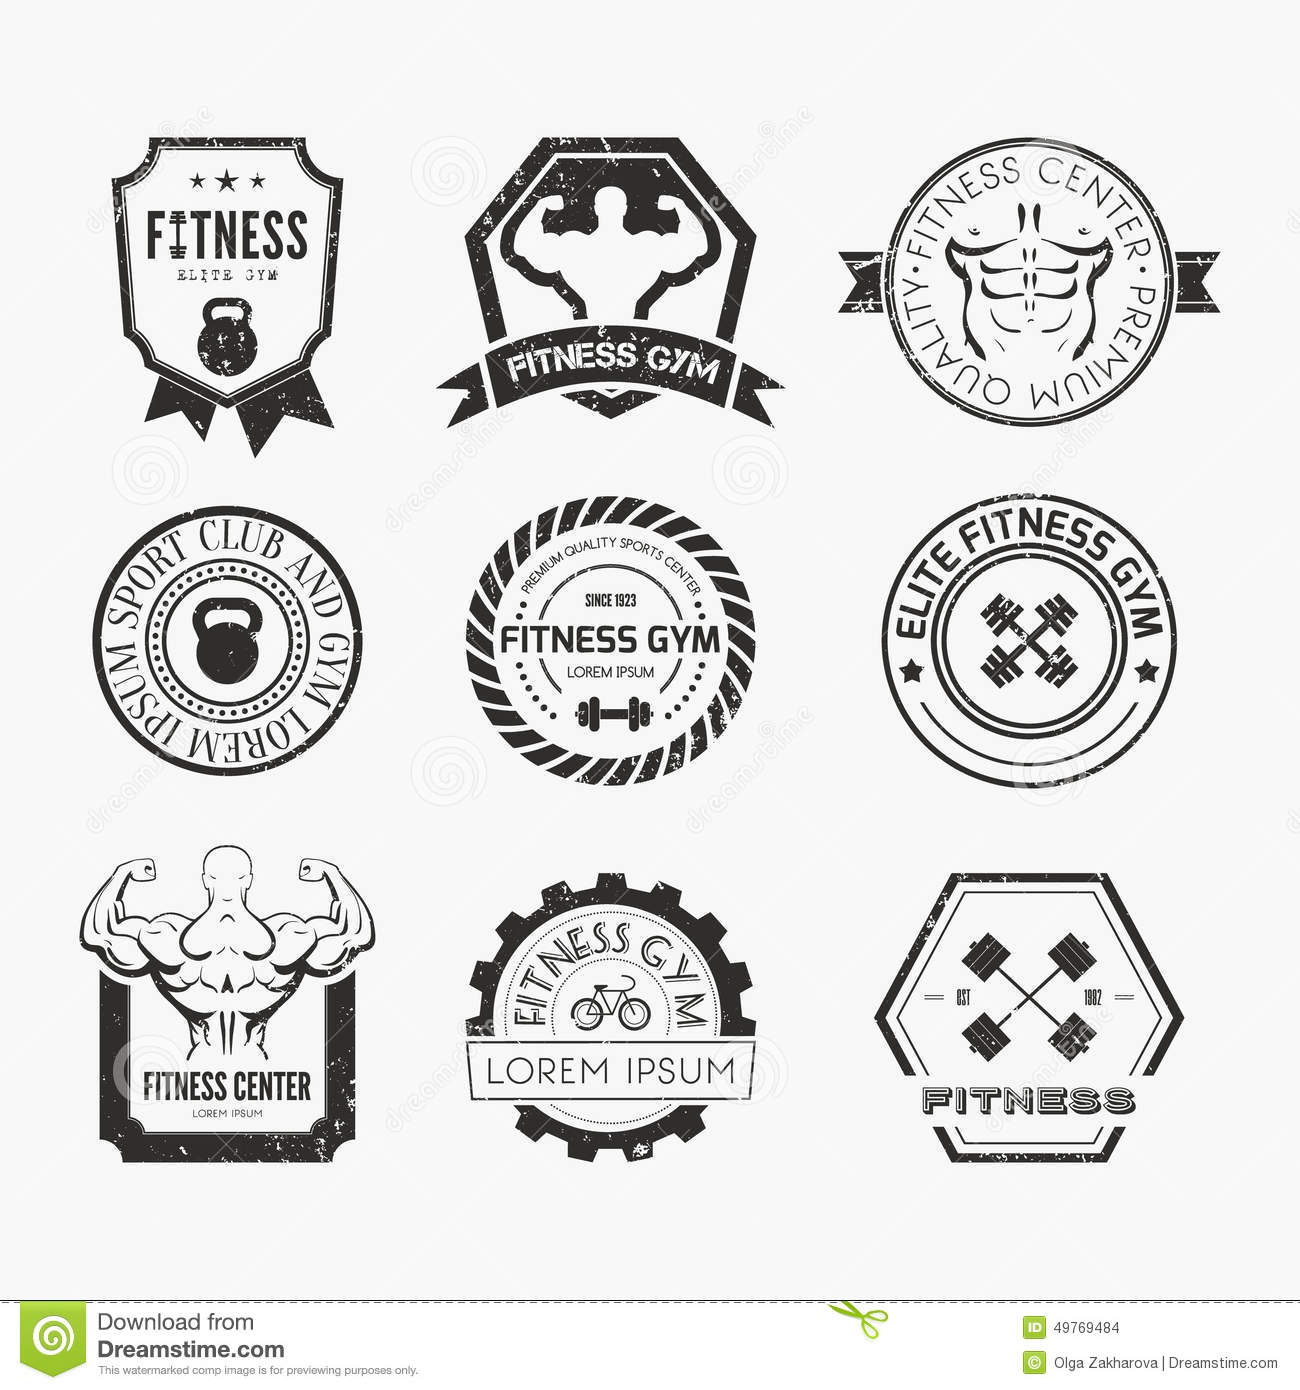 Fitness And Sport Gym Logos Stock Vector - Image: 49769484